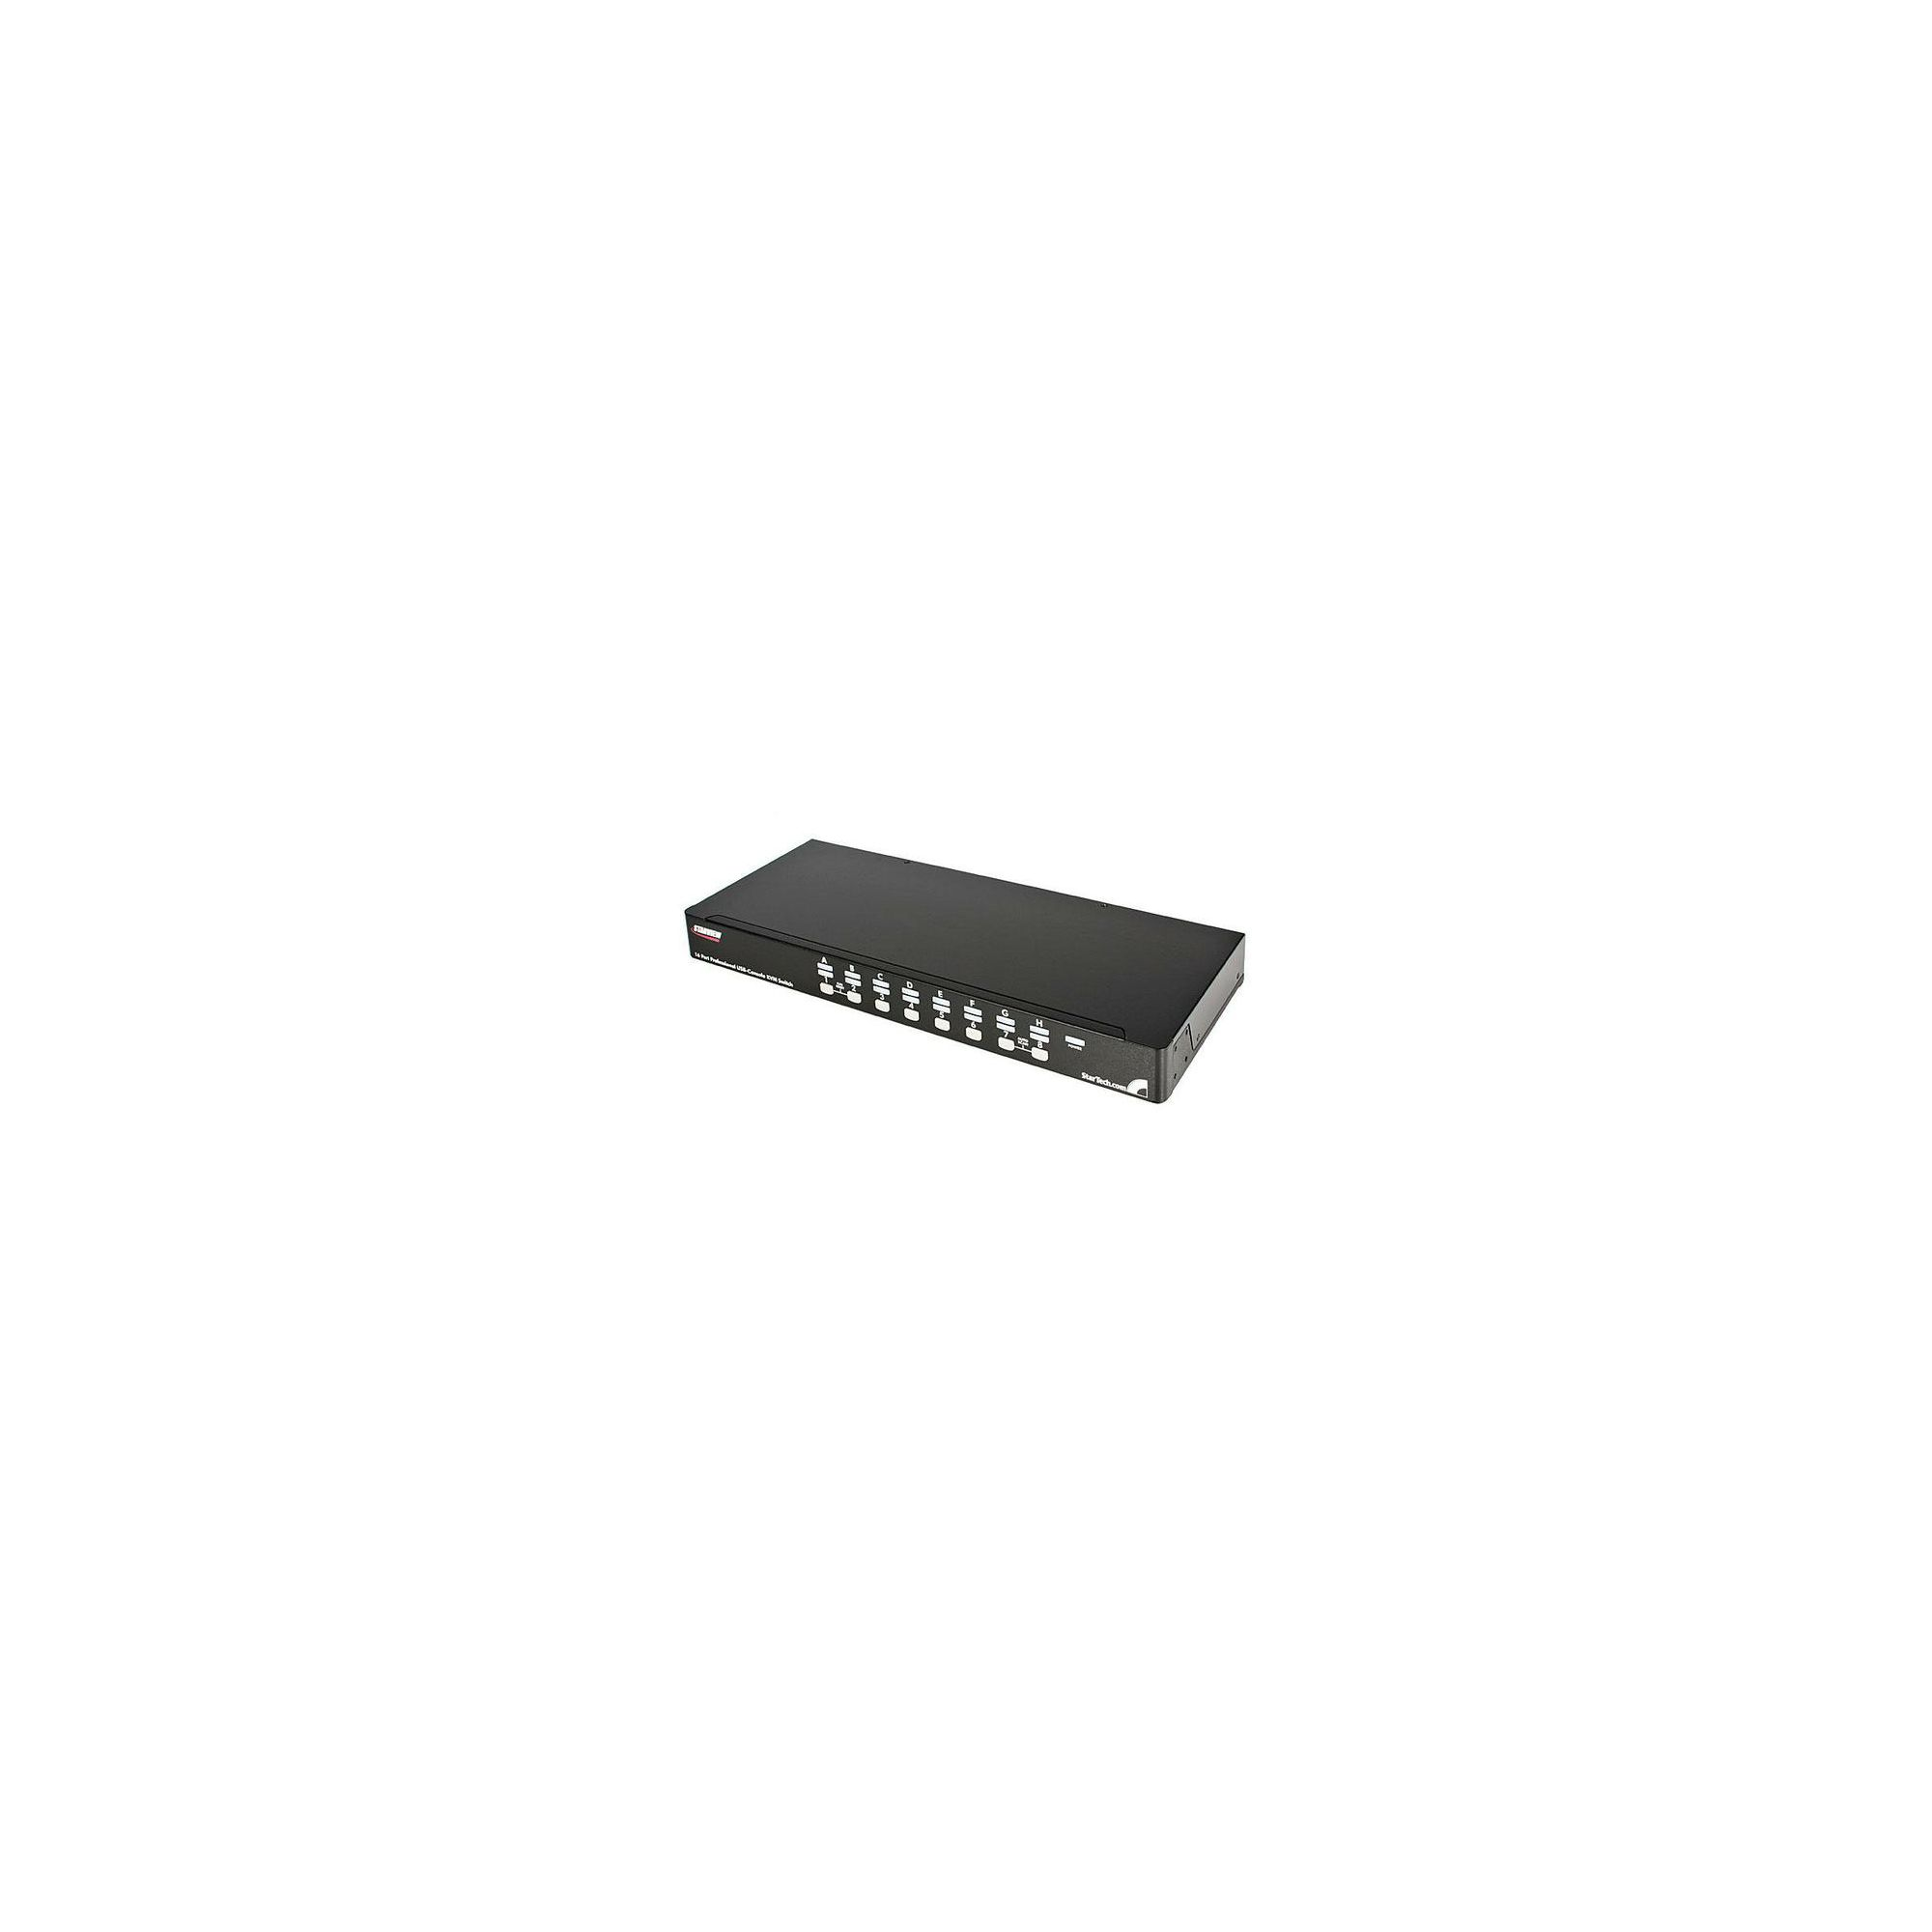 StarTech 16 Port 1U Rack Mount USB PS/2 KVM Switch with OSD at Tesco Direct